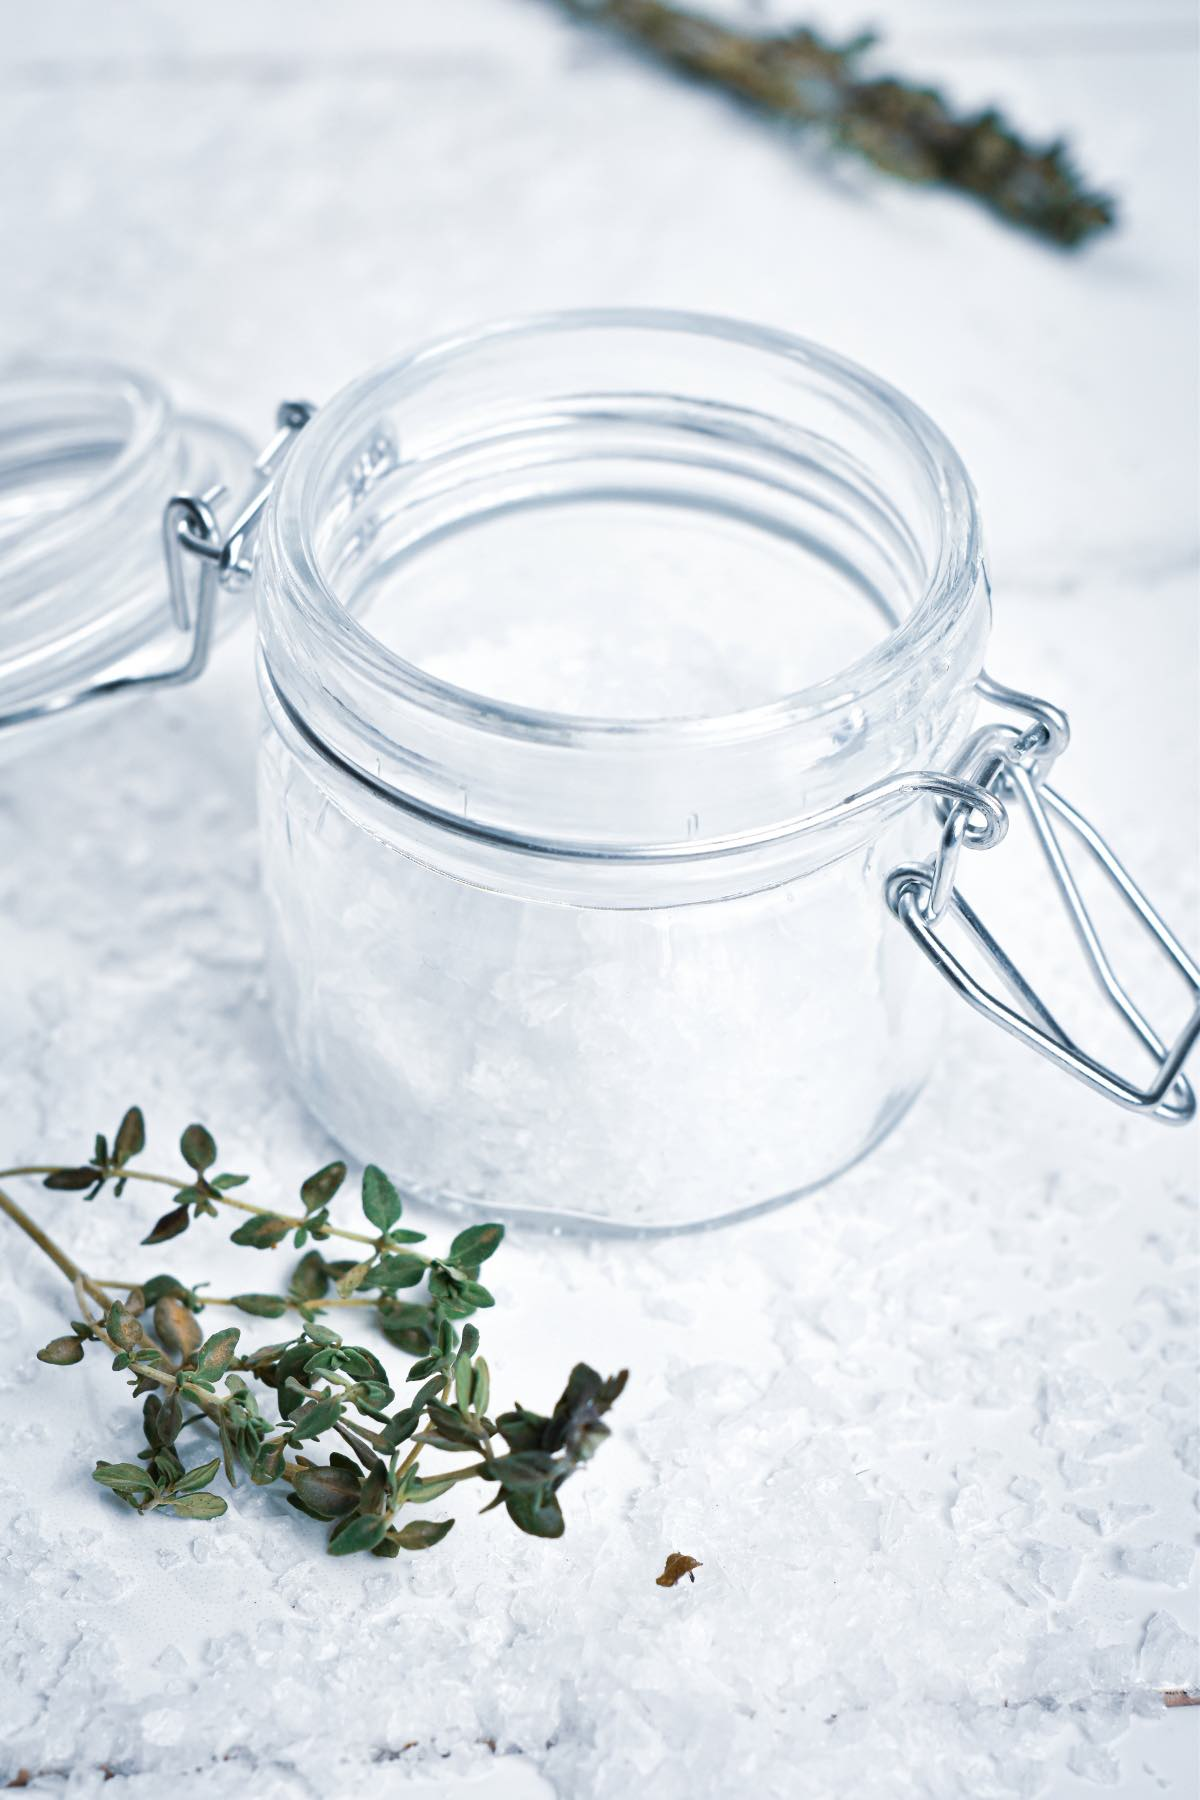 Enjoy a little downtime this season with this DIY homemade lemon thyme salt scrub containing only 4 ingredients (super easy!).